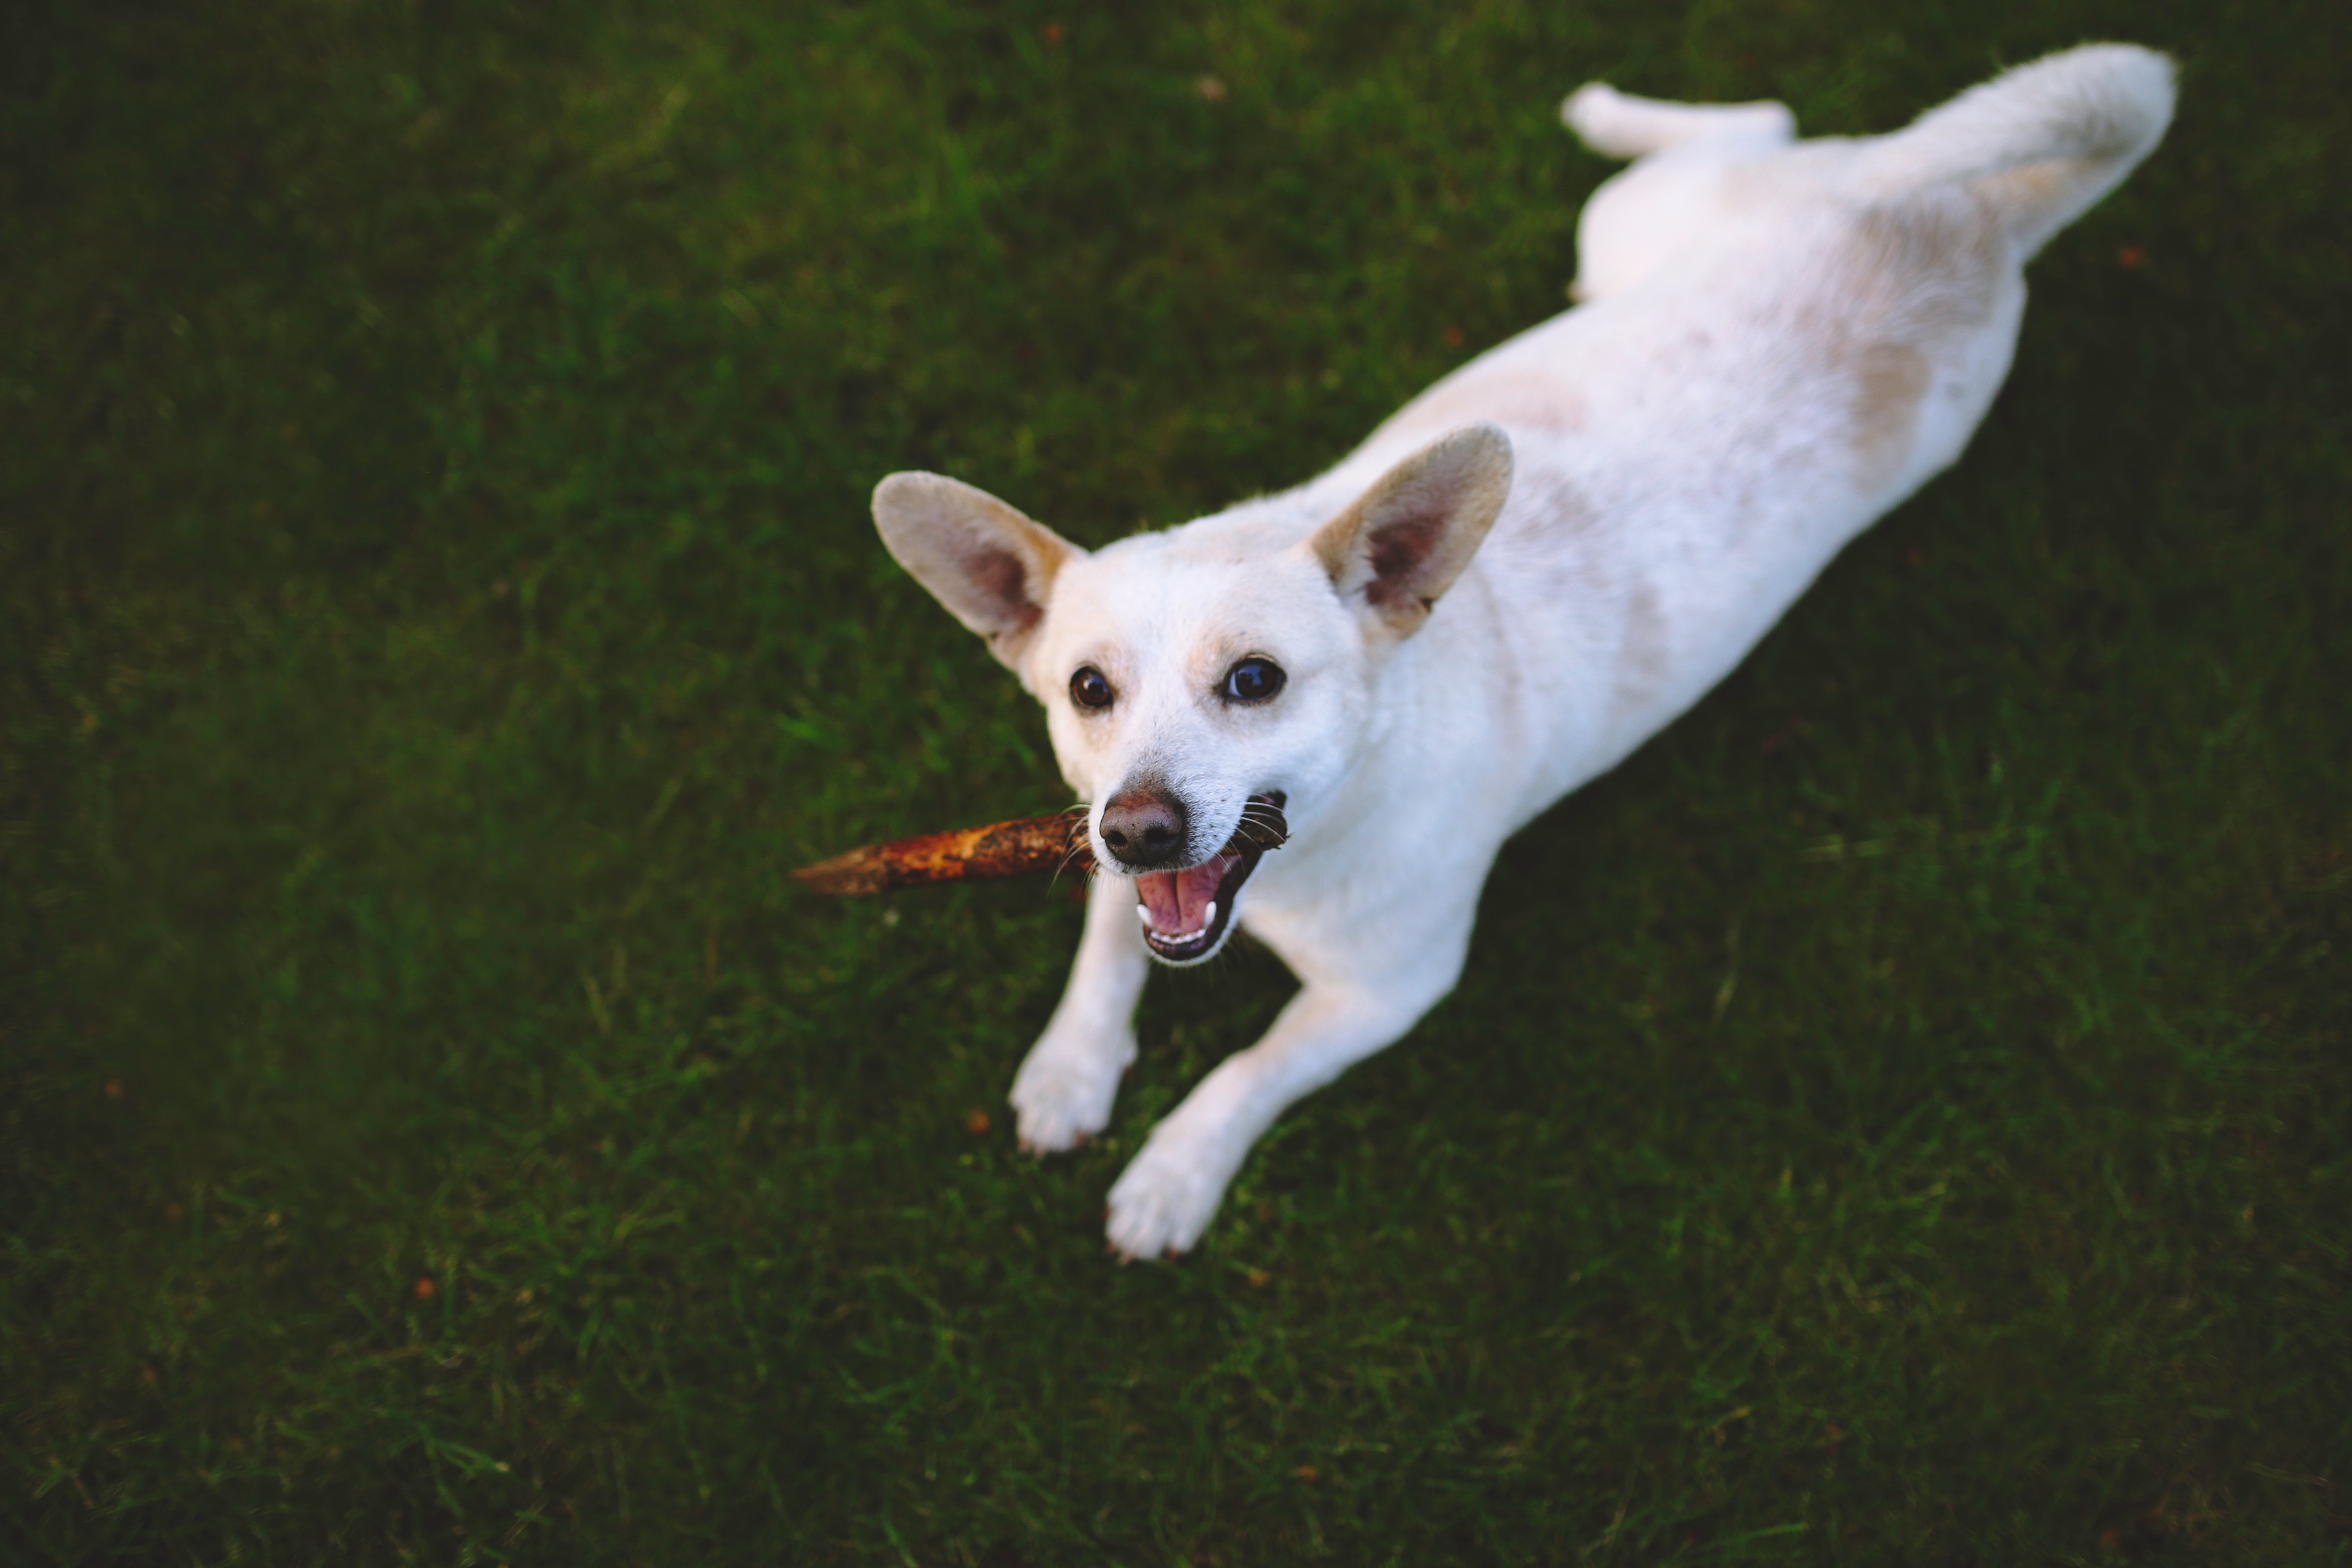 Dog on the grass, Animal, Outdoors, White, Toy, HQ Photo